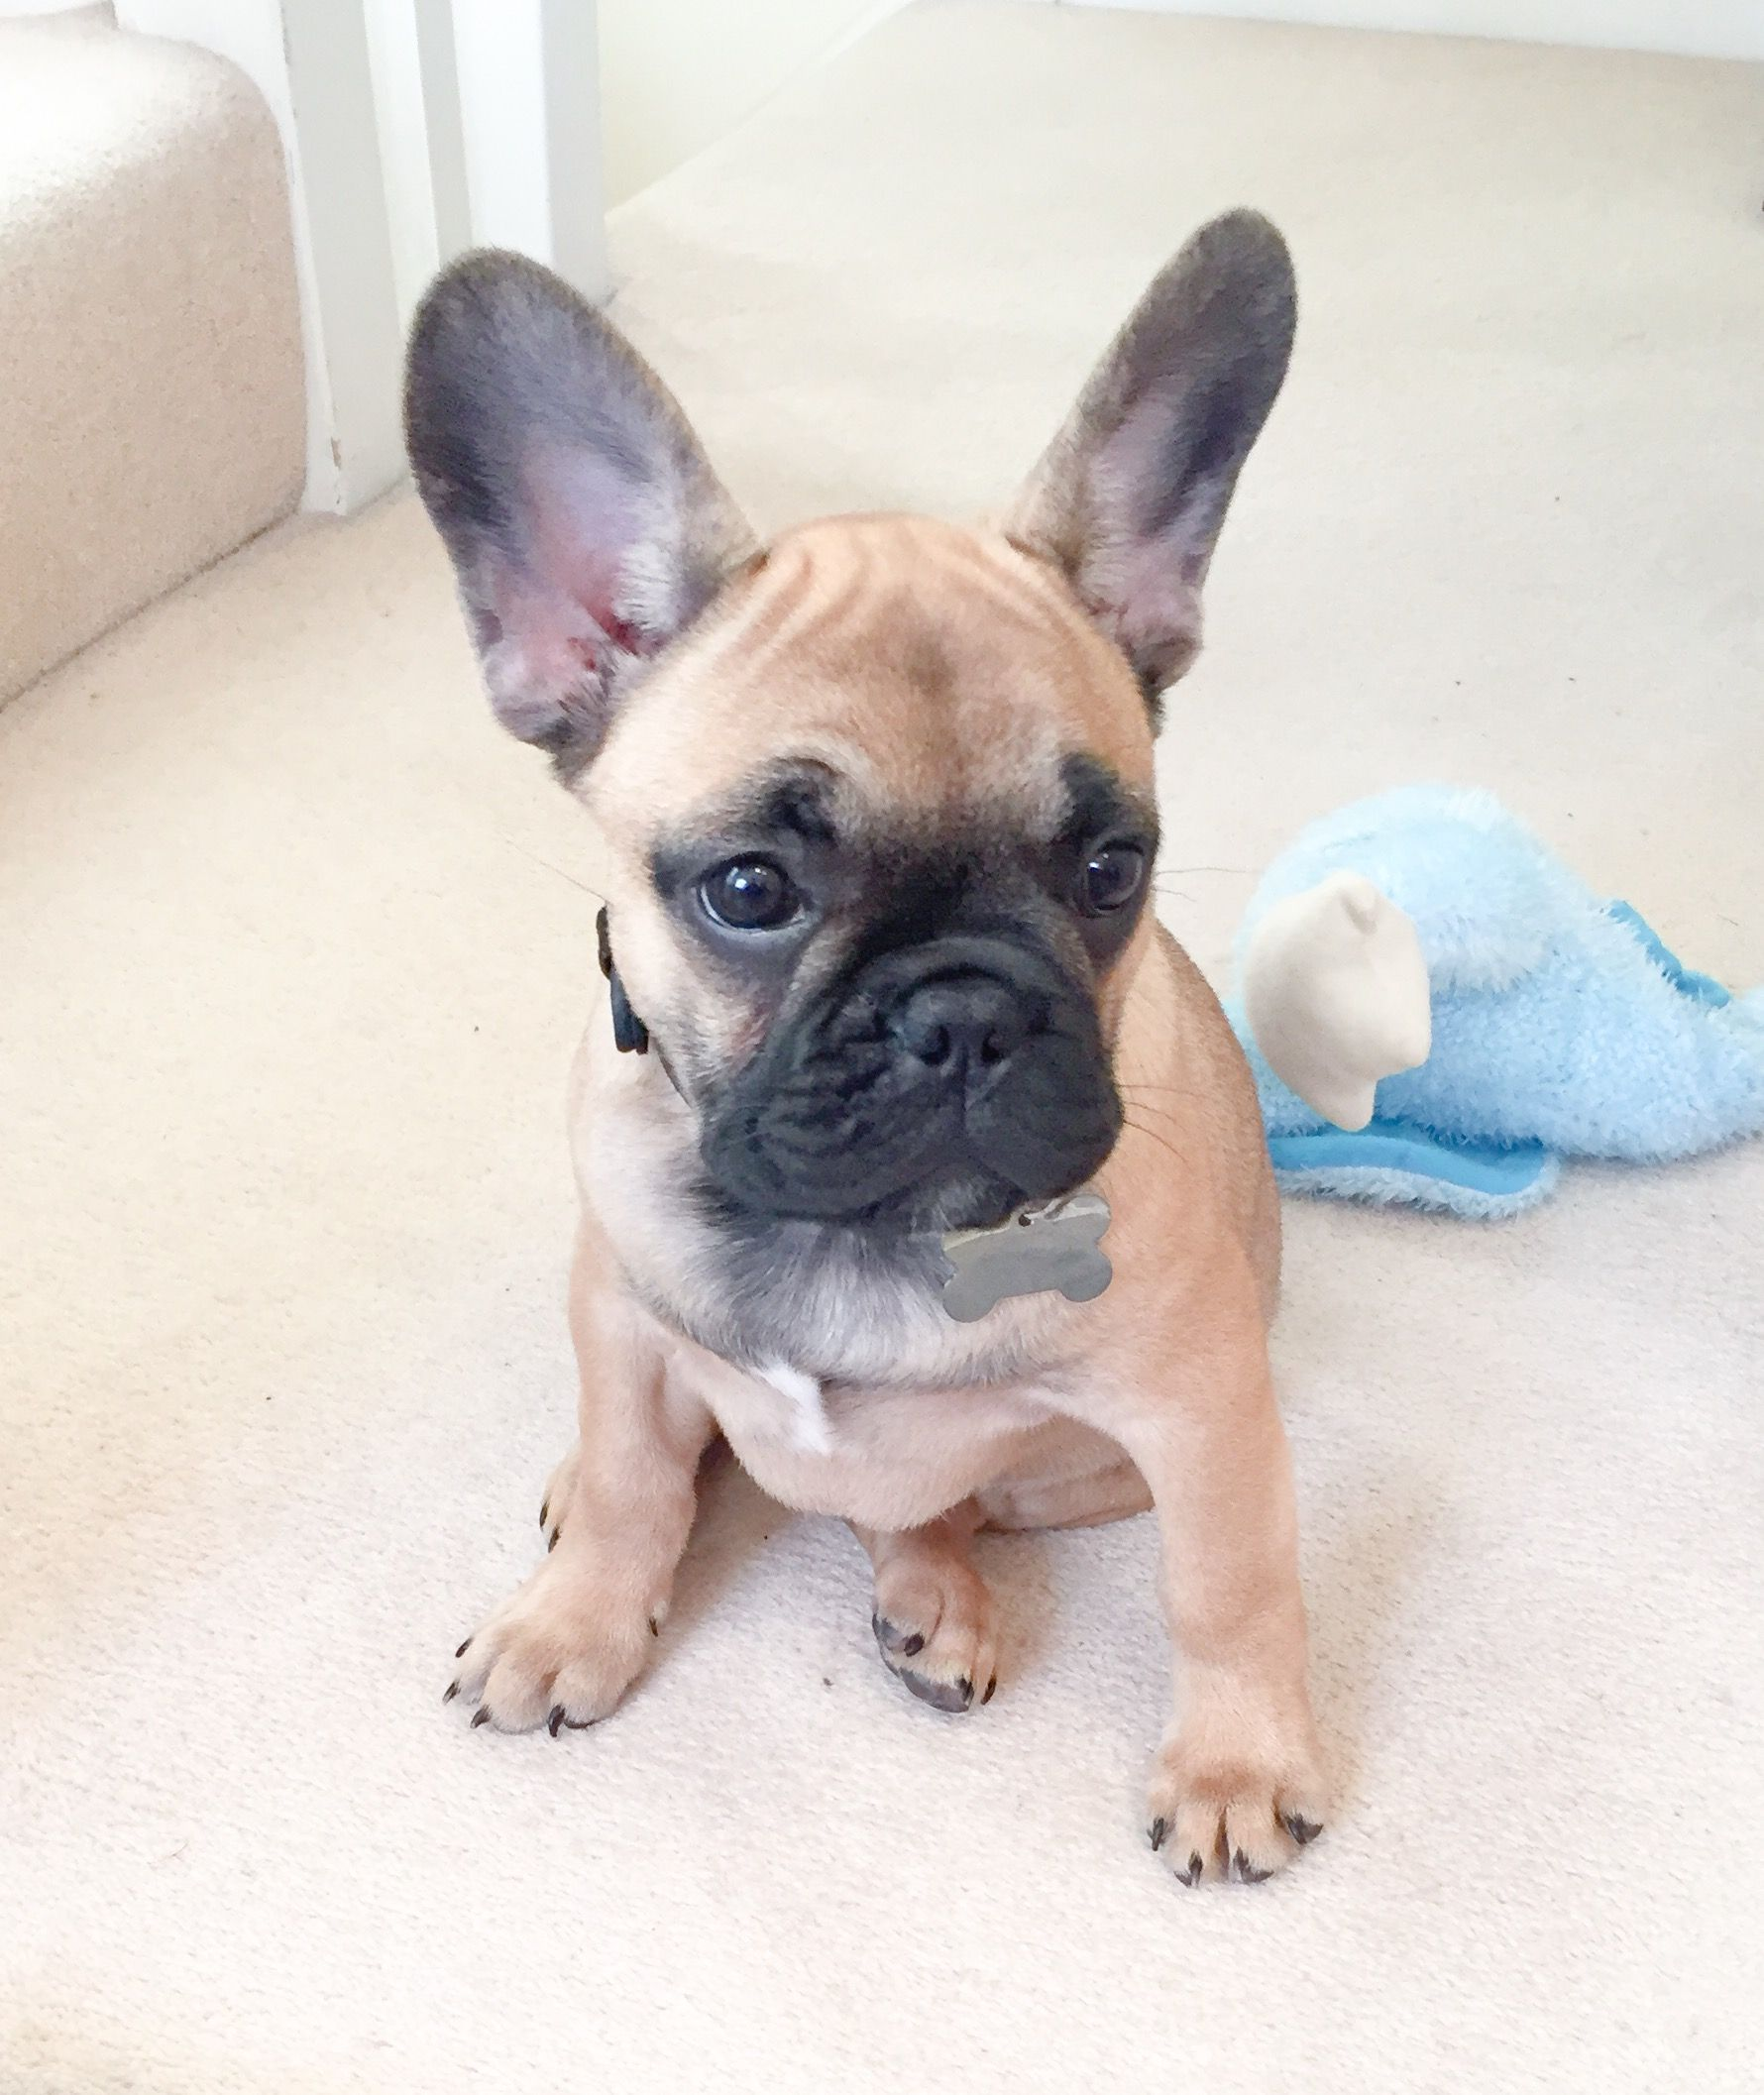 Gus, the French Bulldog Puppy